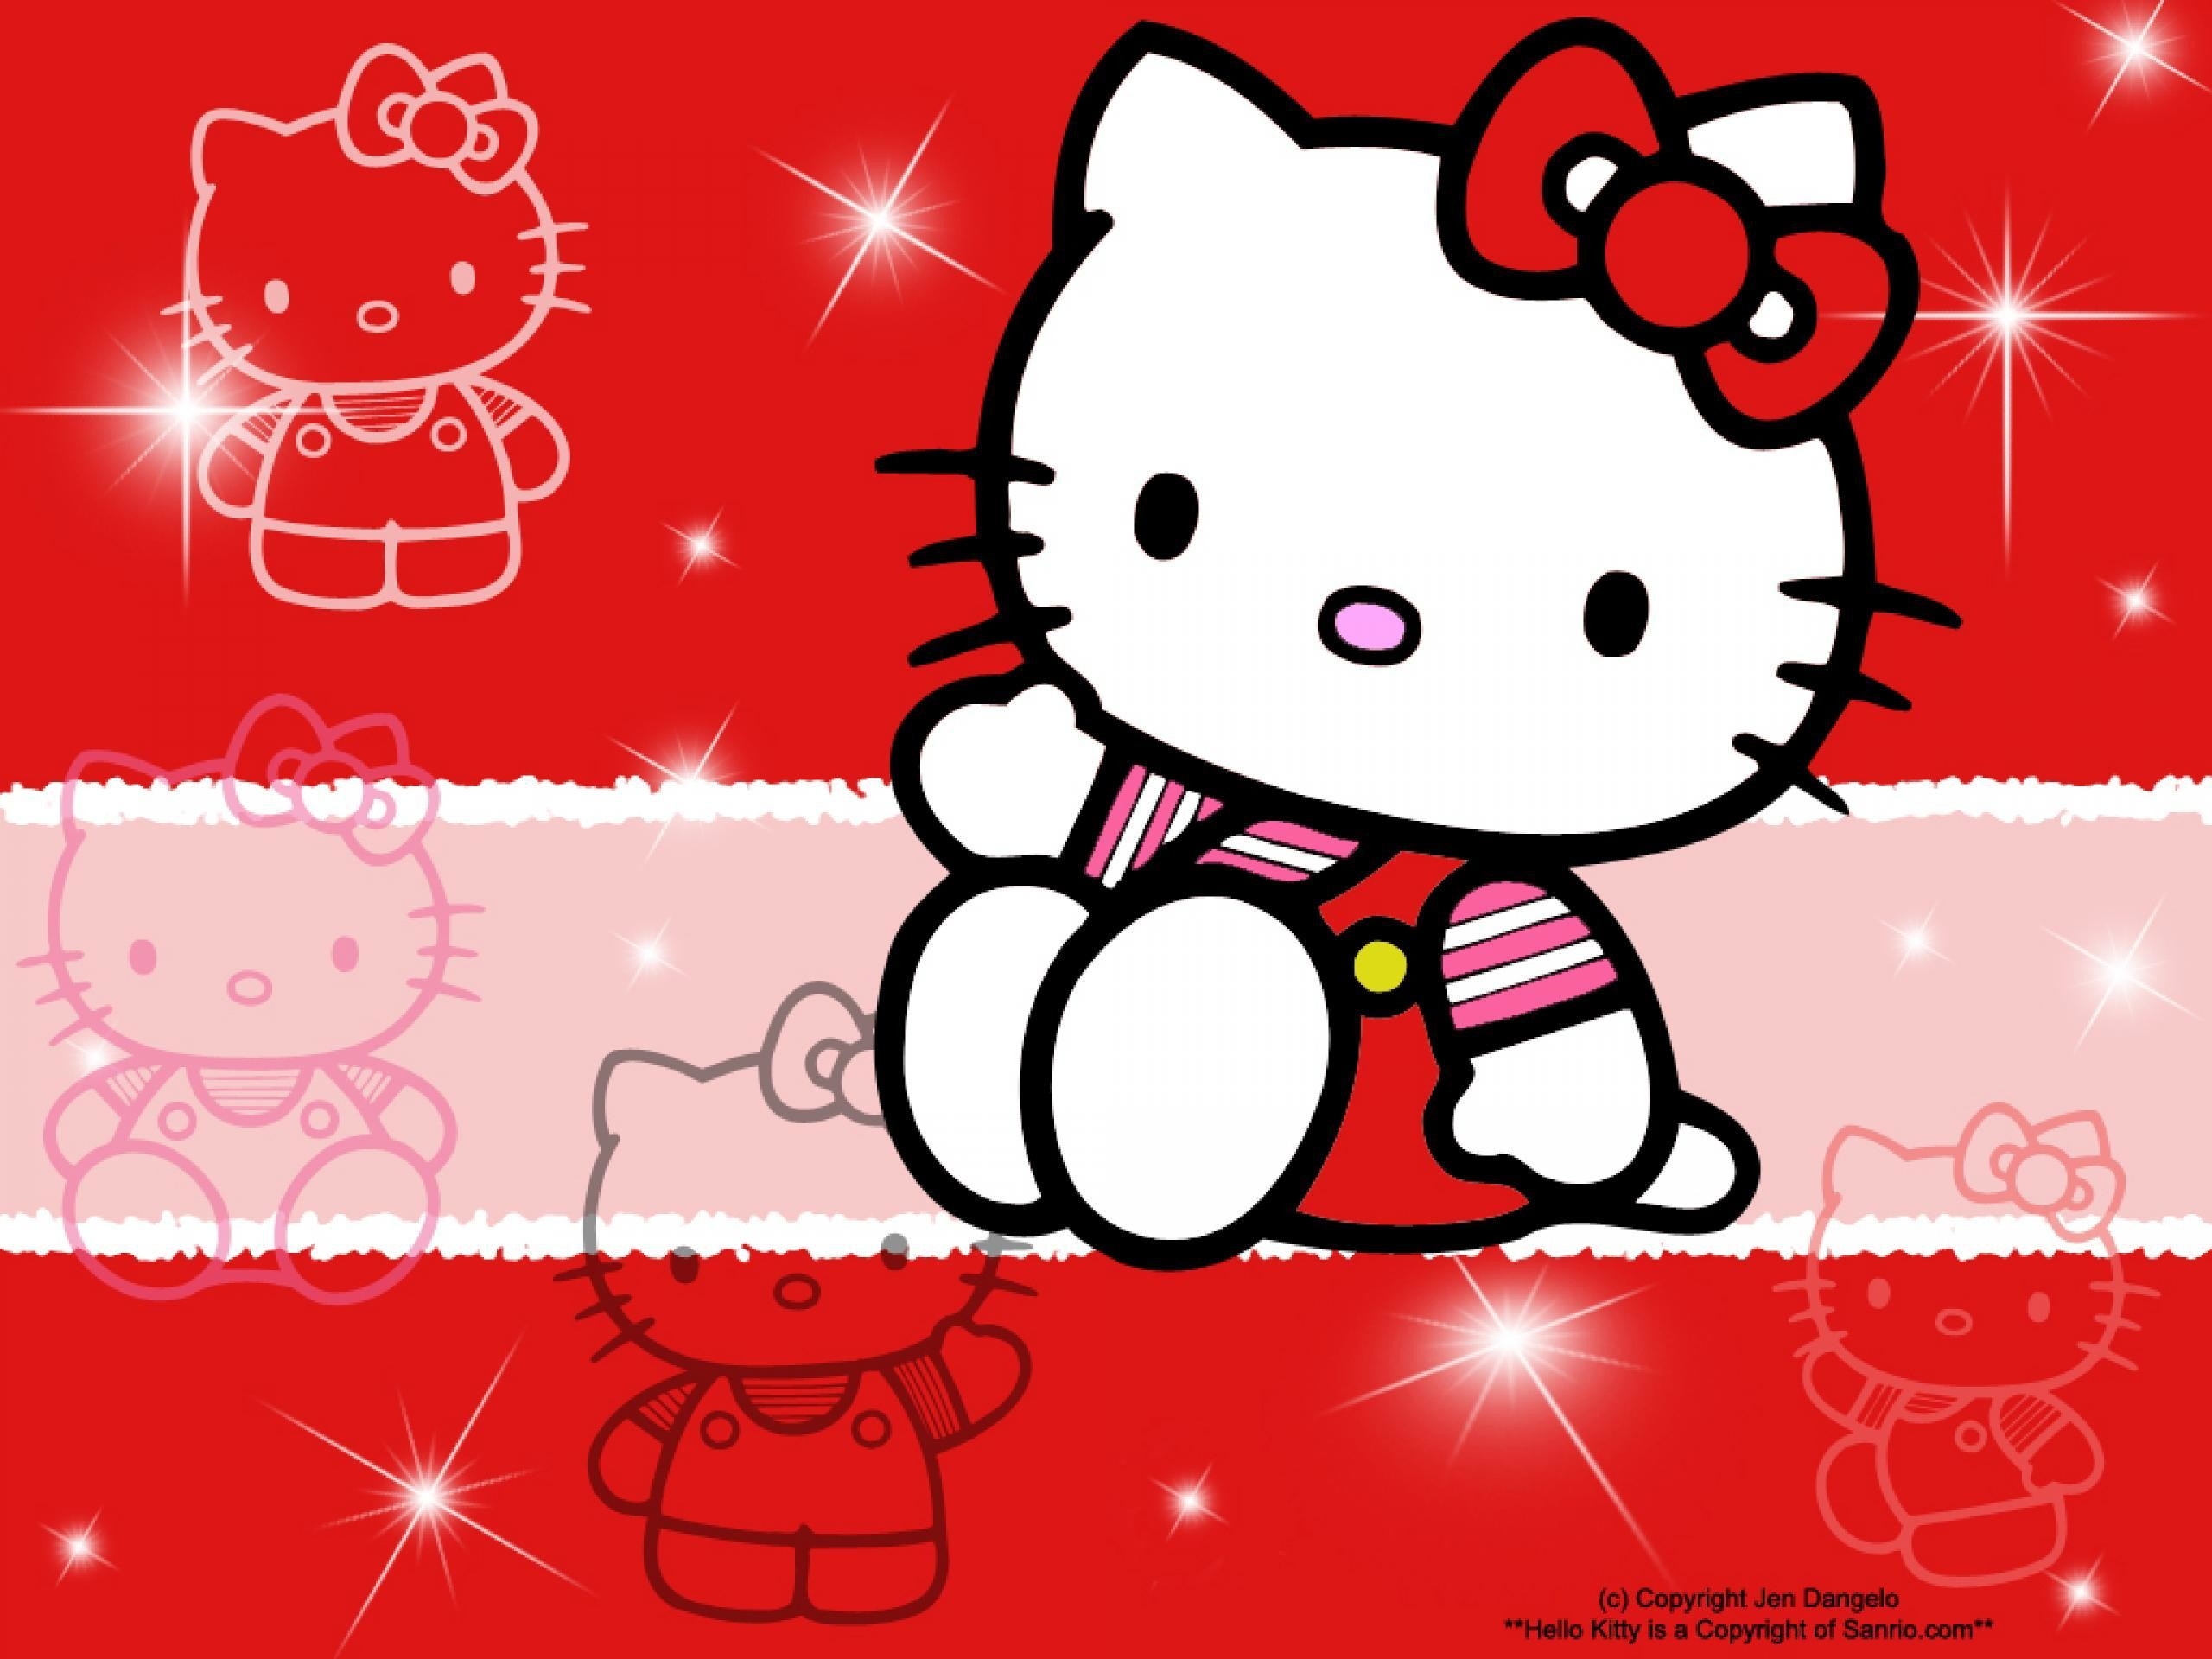 Download Wallpaper Hello Kitty Ipad - 806883-large-hello-kitty-red-wallpaper-2560x1920-for-ipad  Perfect Image Reference_996288.jpg